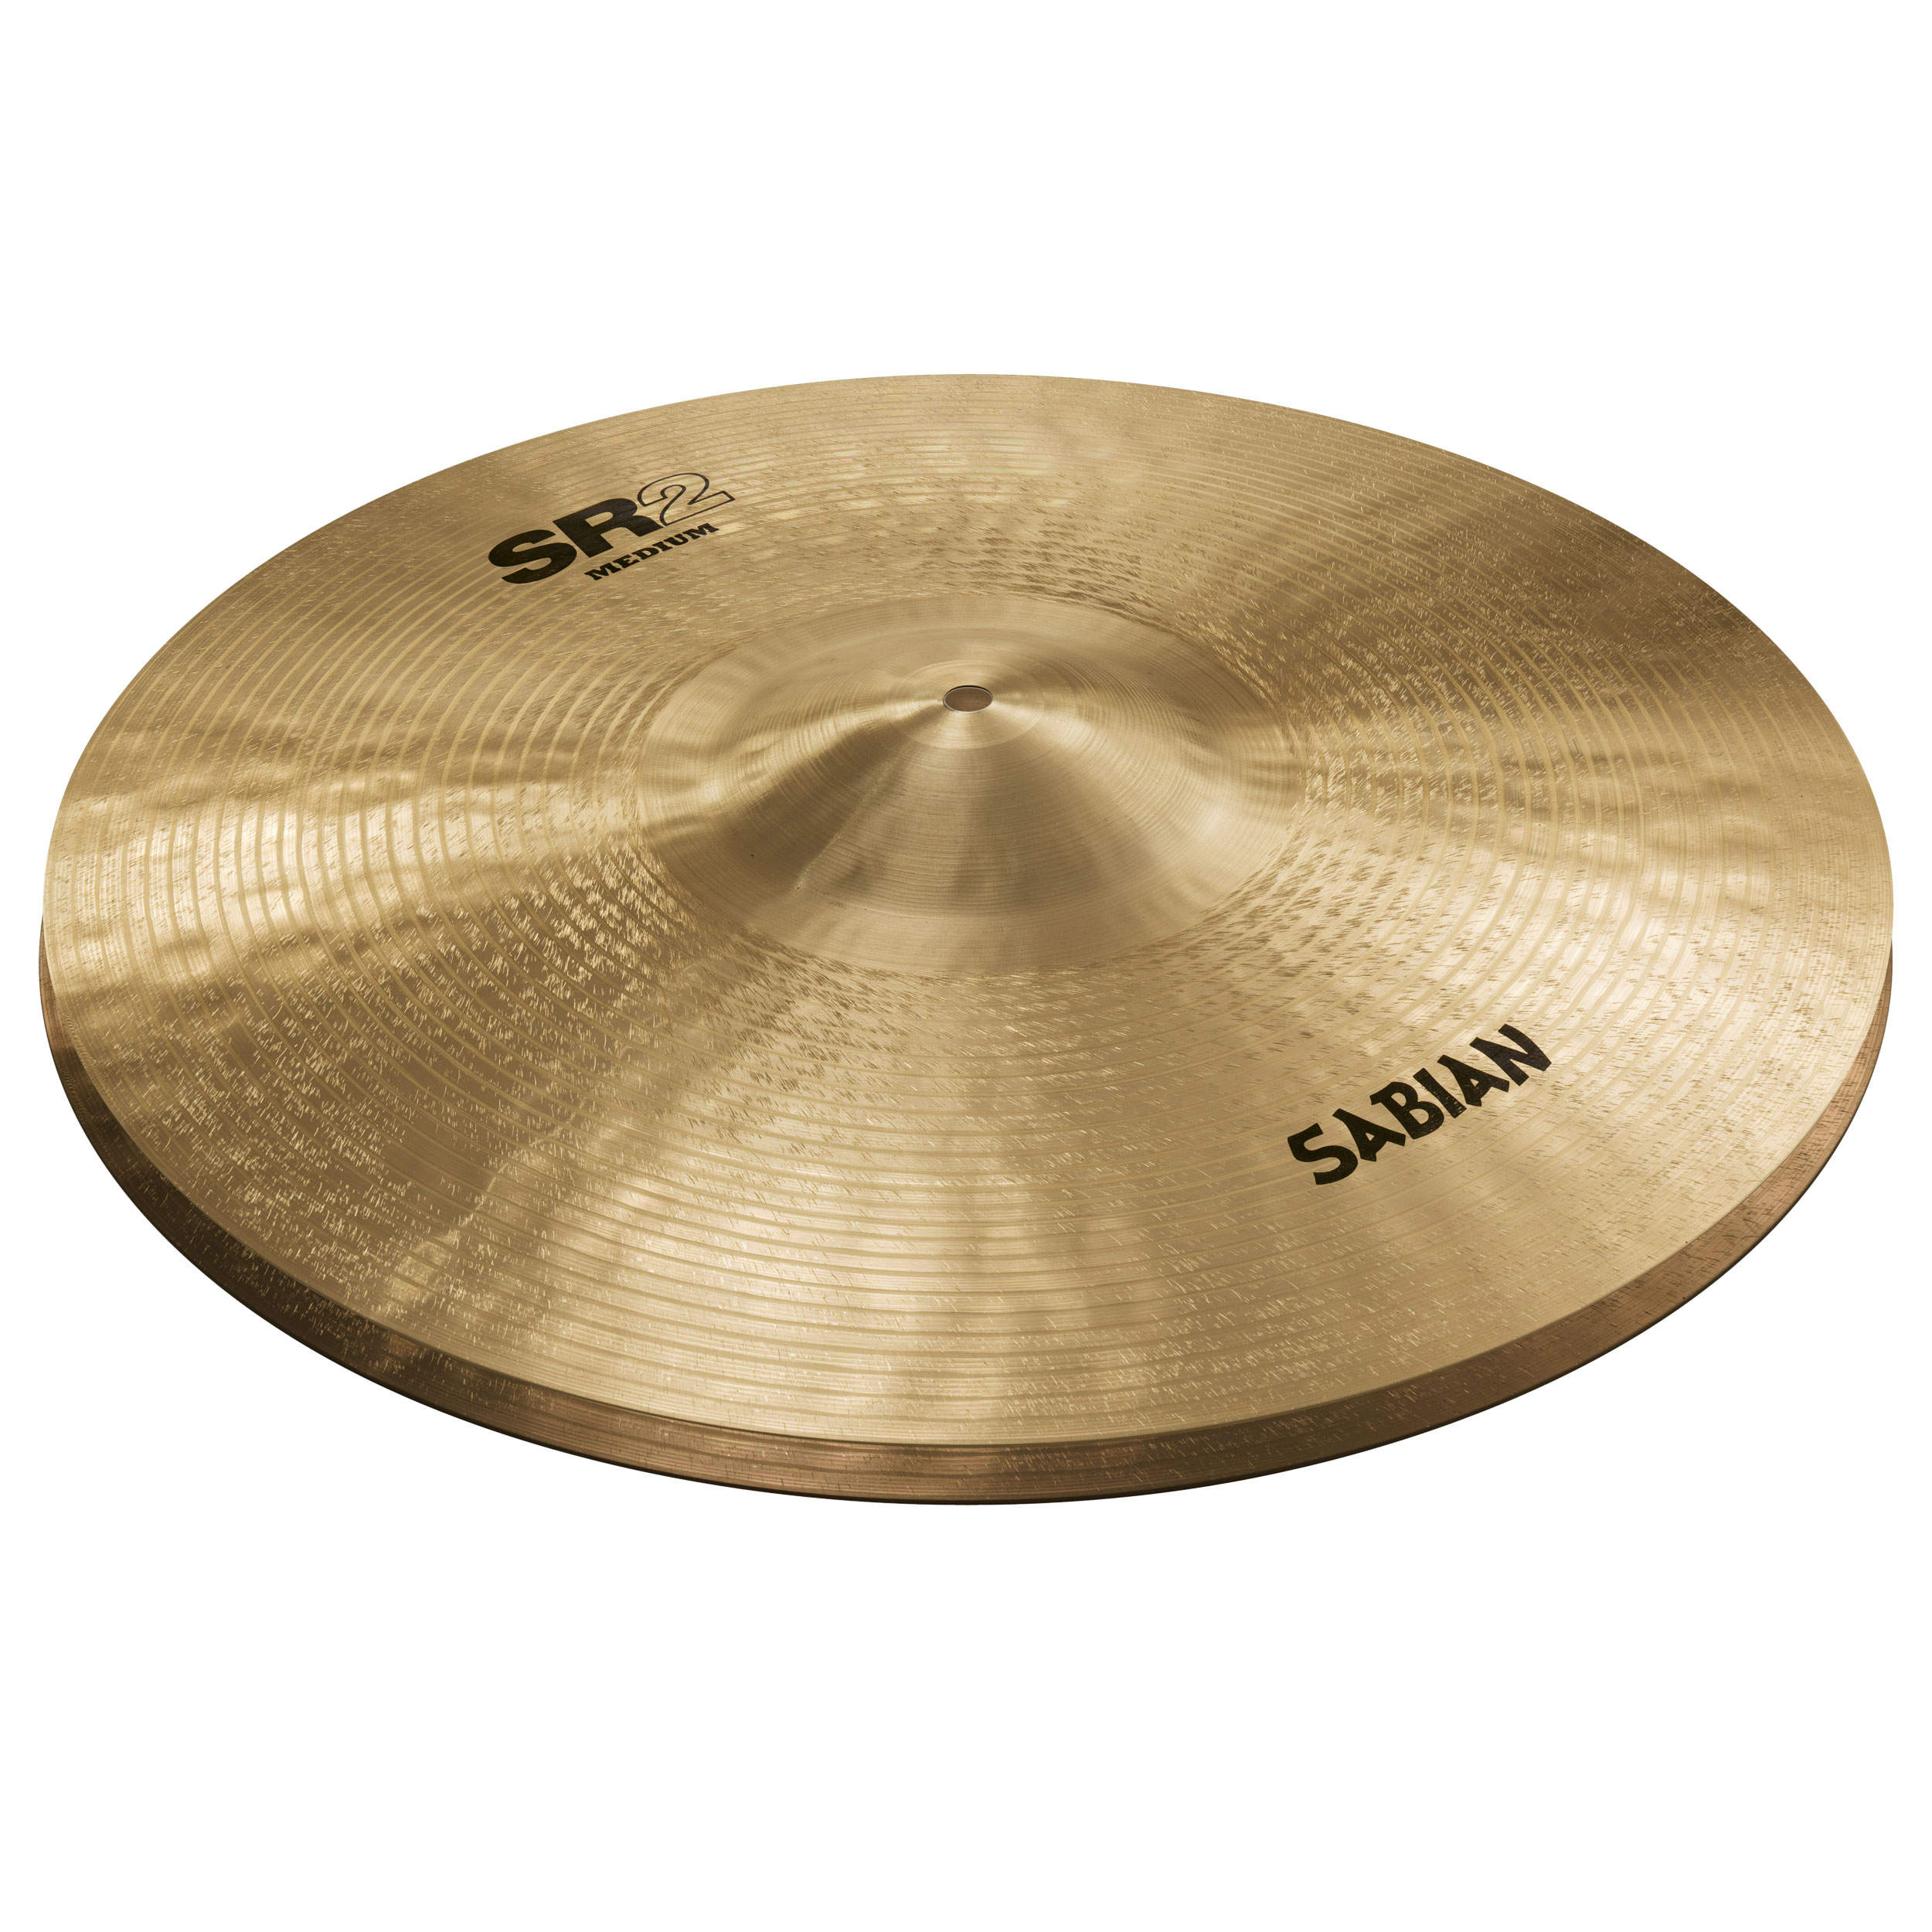 "Sabian 15"" SR2 Band and Orchestra Medium Crash Cymbal Pair"